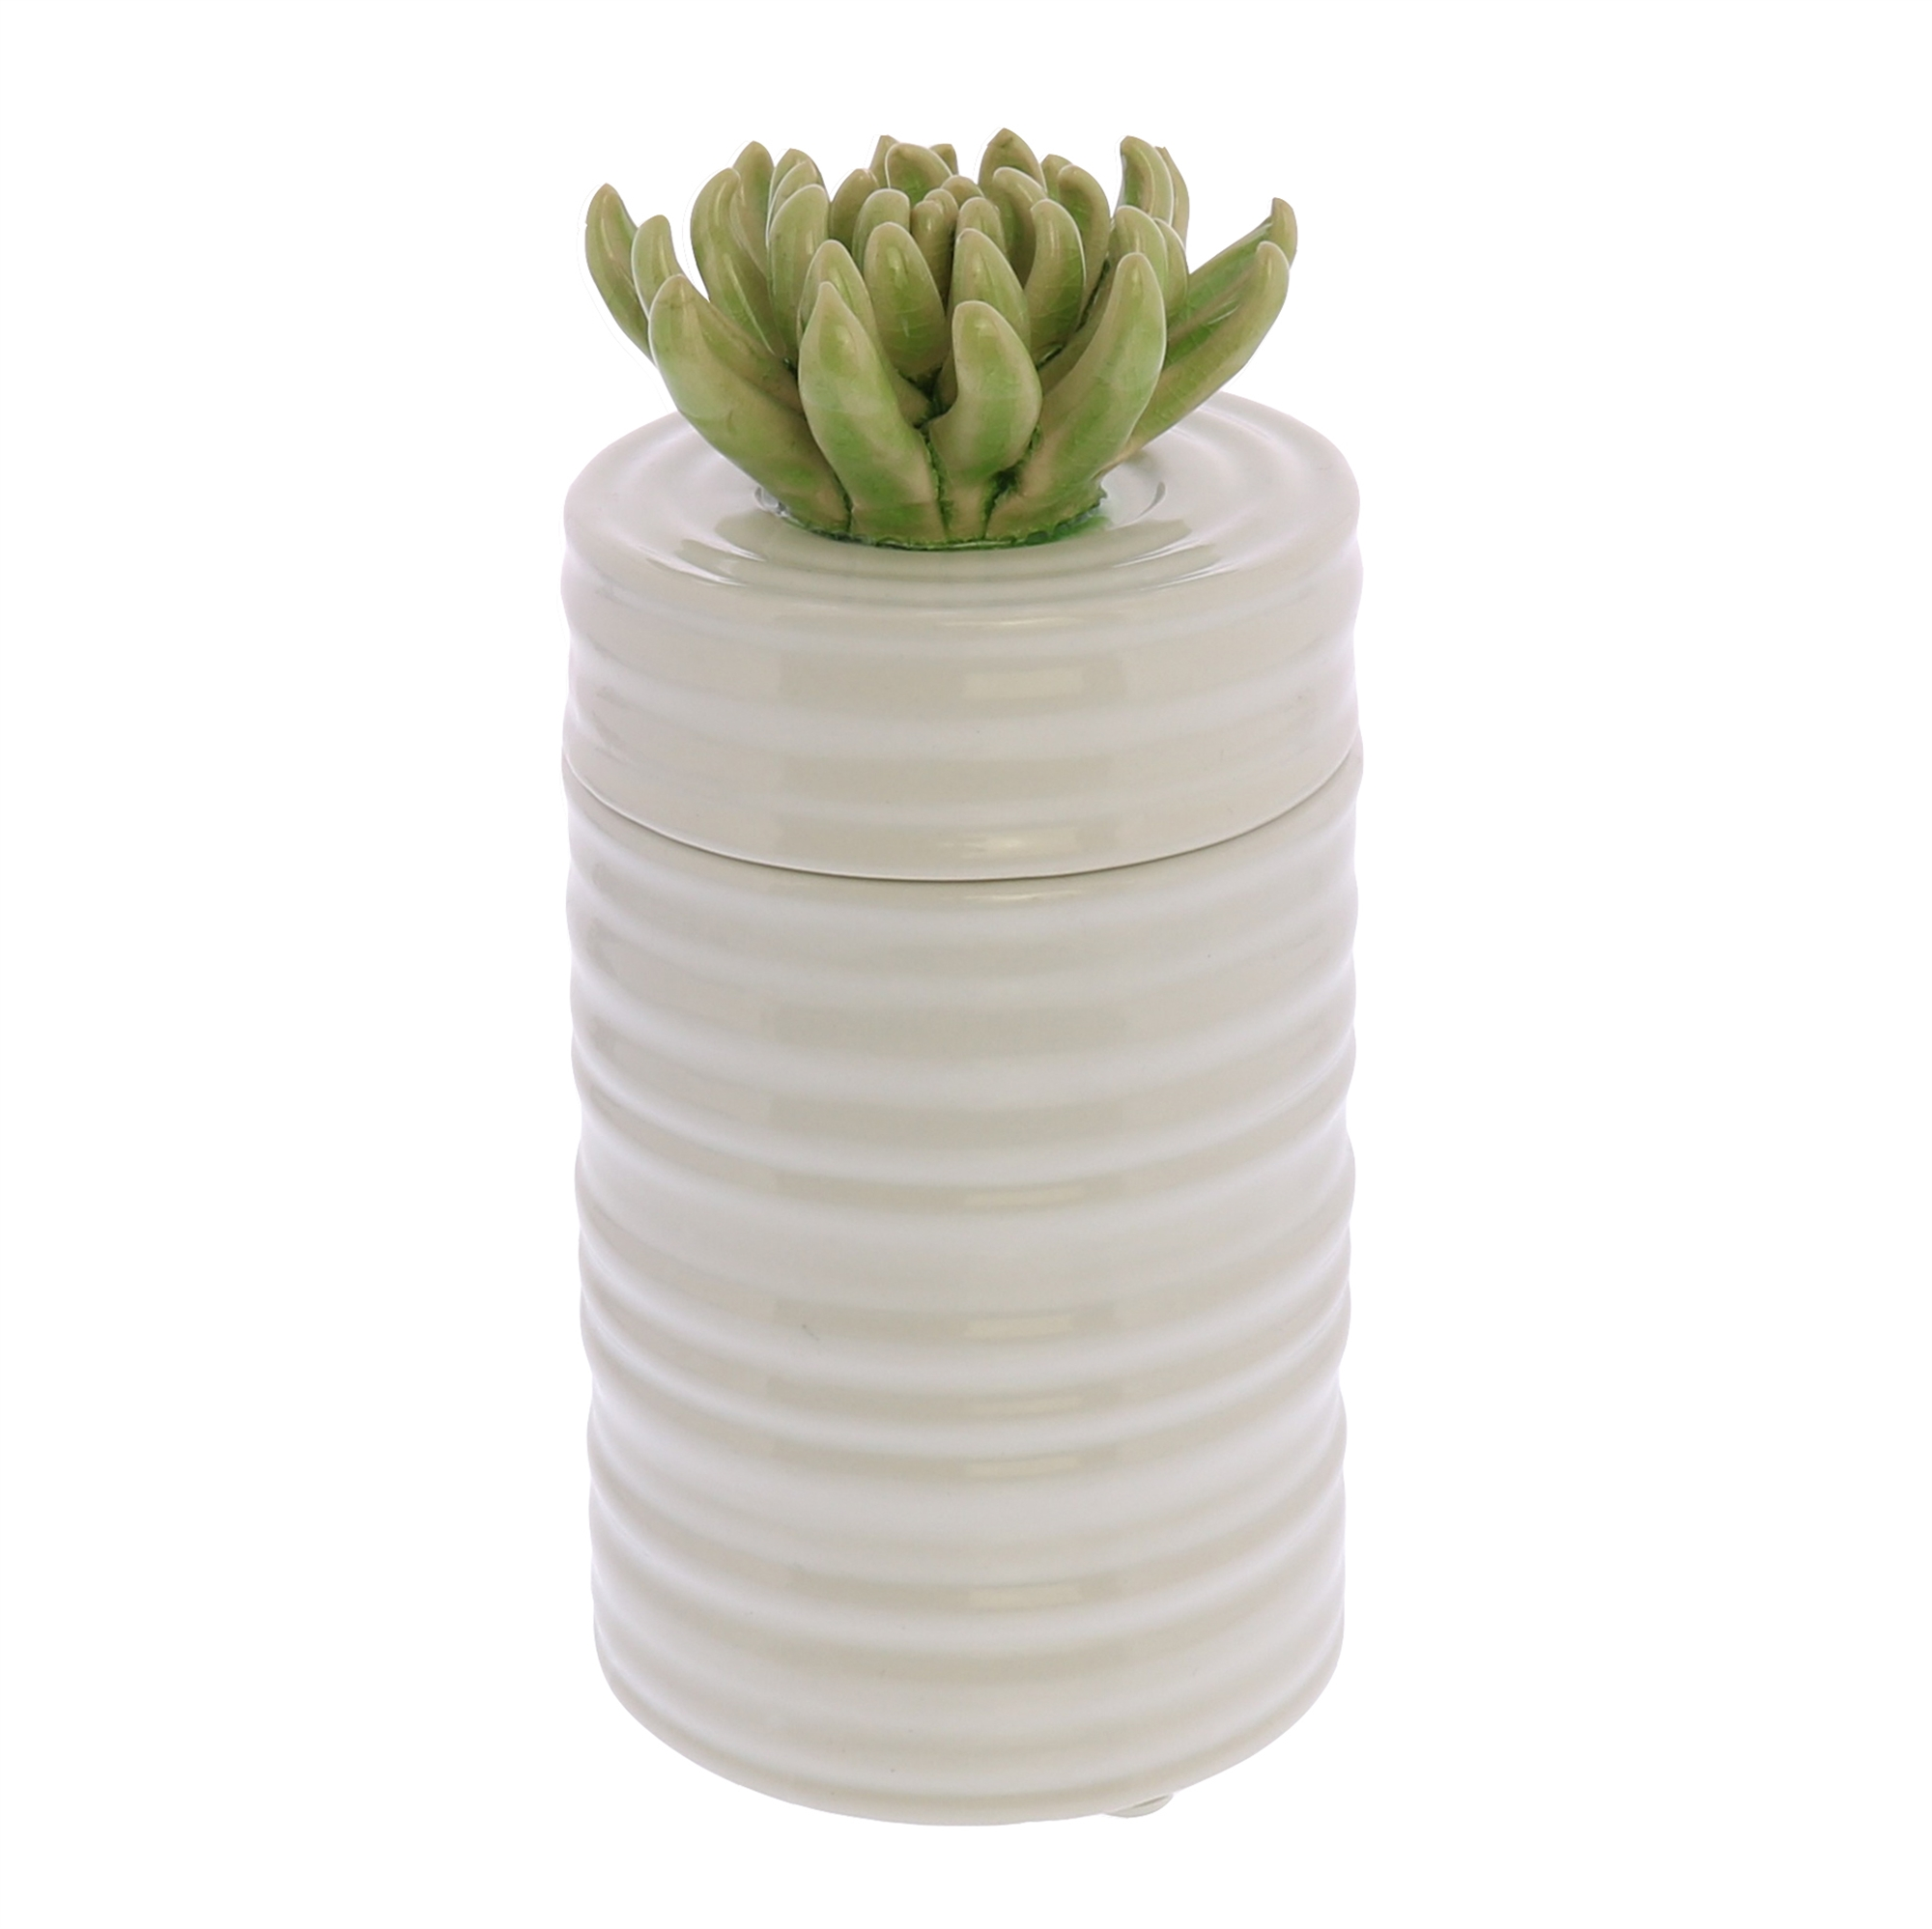 7679-3 - Succulent Canister - Tall - Green by HomArt